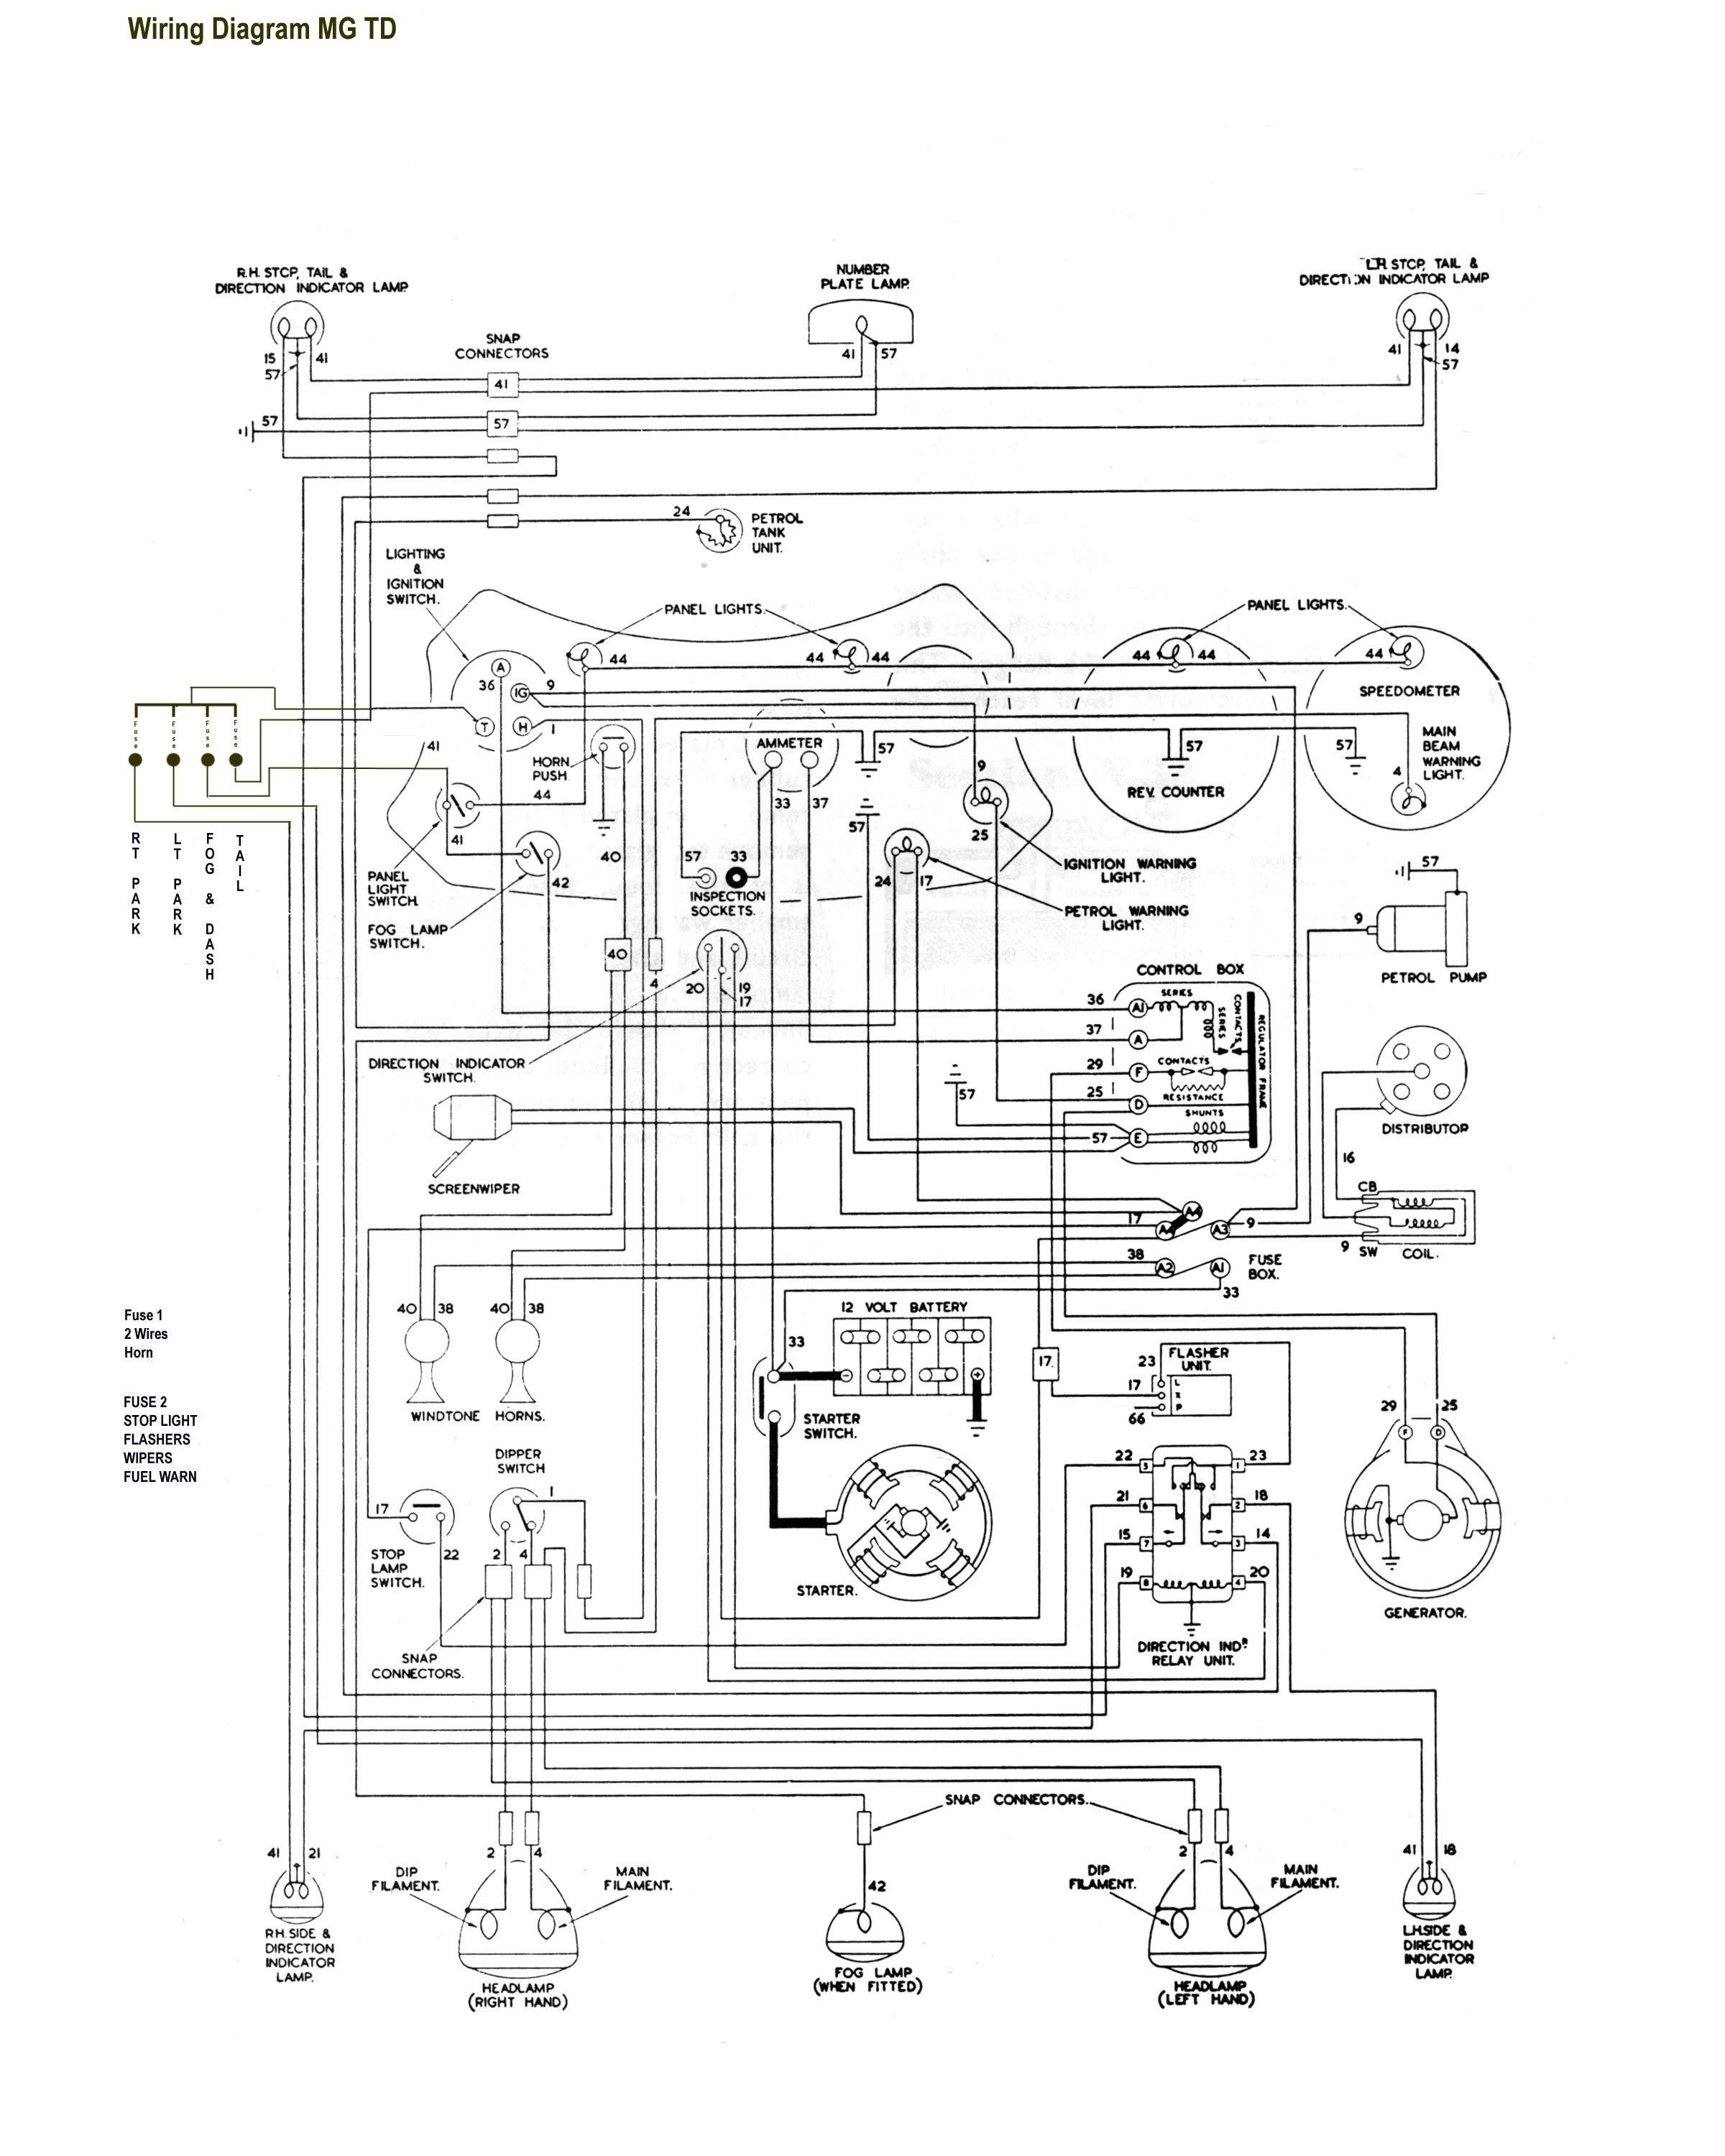 index of technical stuff 1938 mg wiring diagram #7